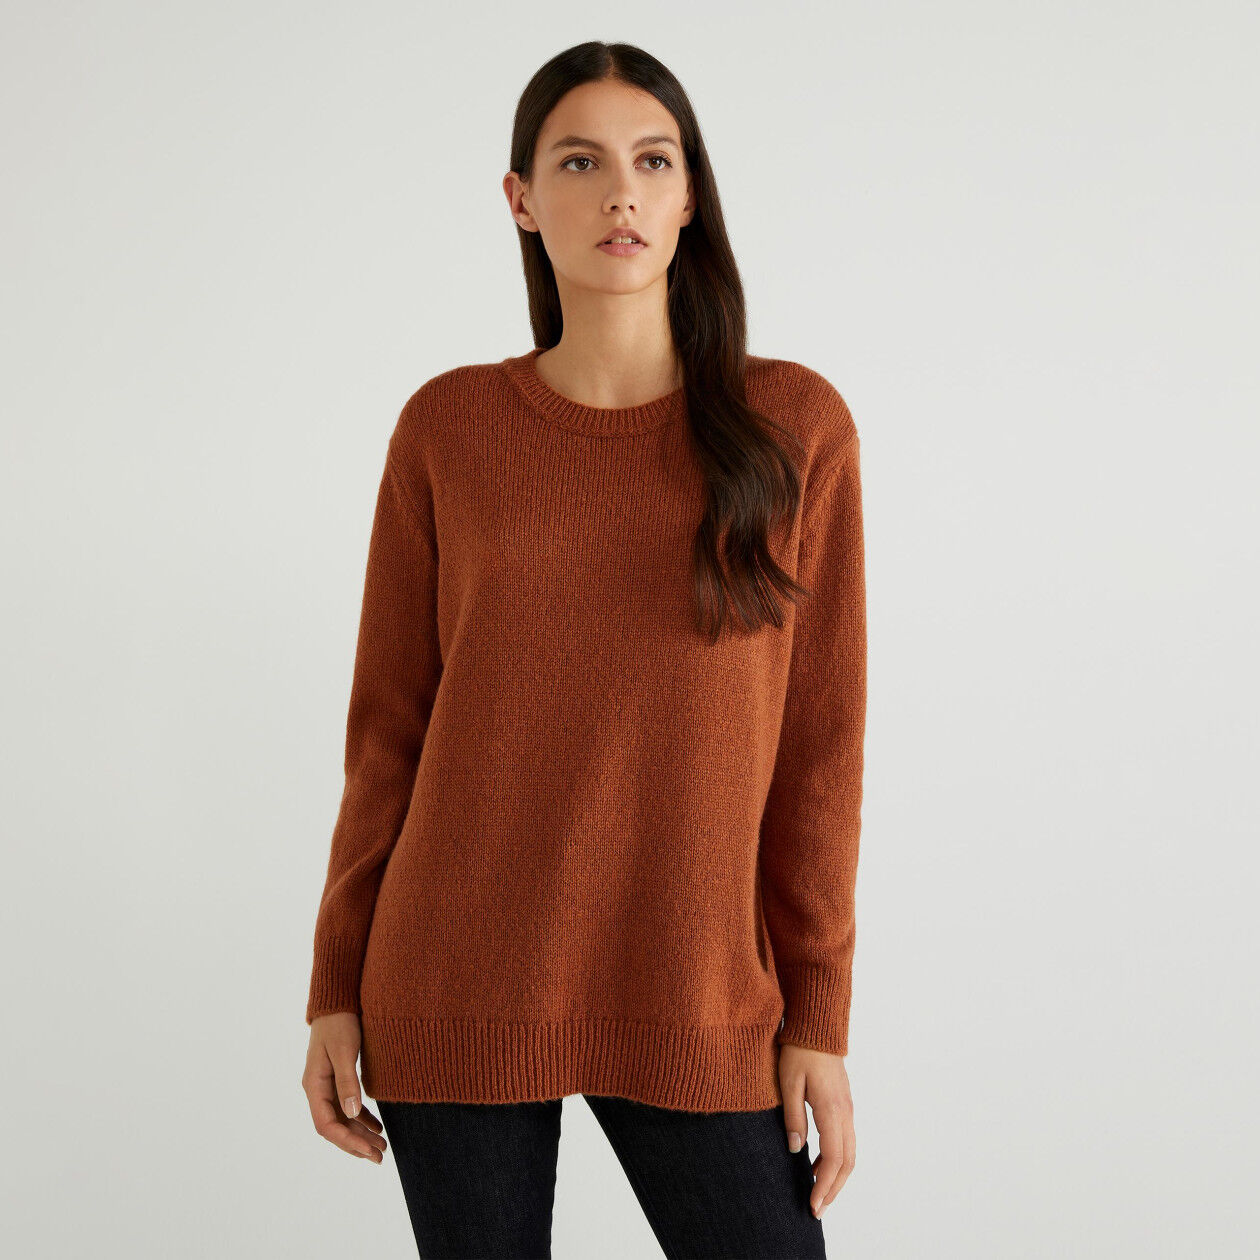 Soft sweater with slits